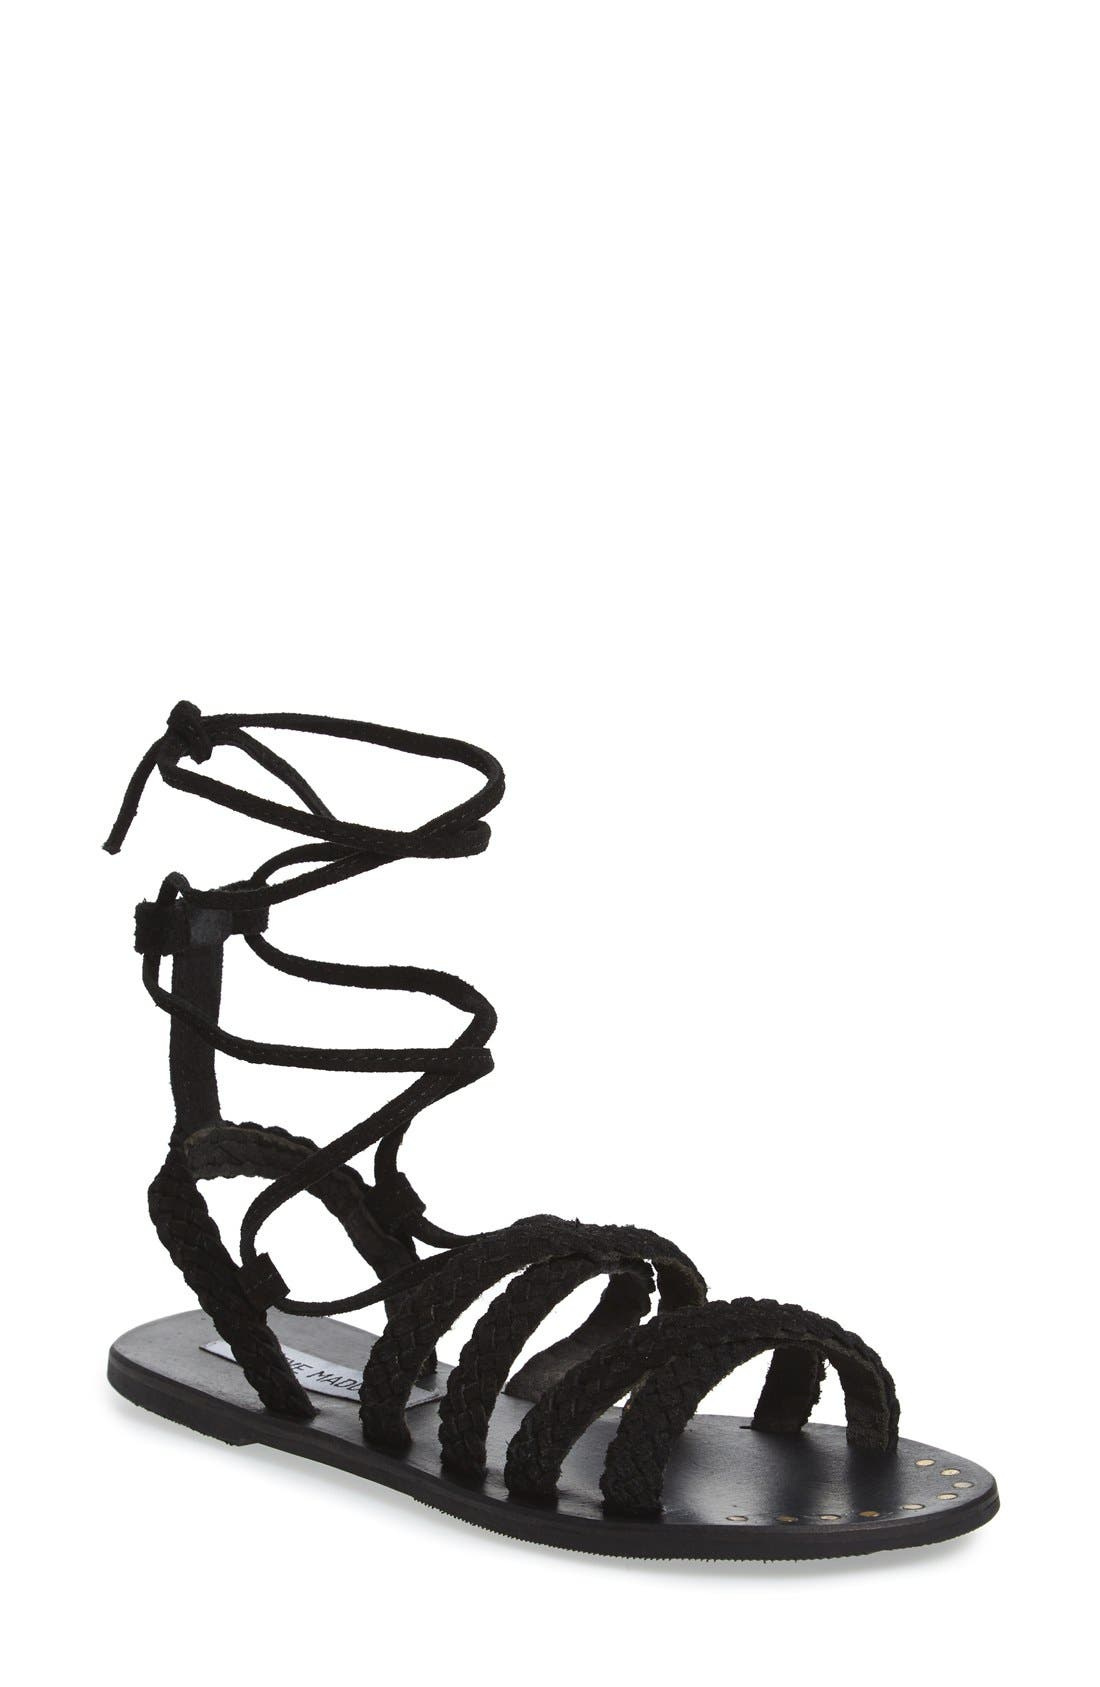 Alternate Image 1 Selected - Steve Madden 'Dorinda' Sandal (Women)